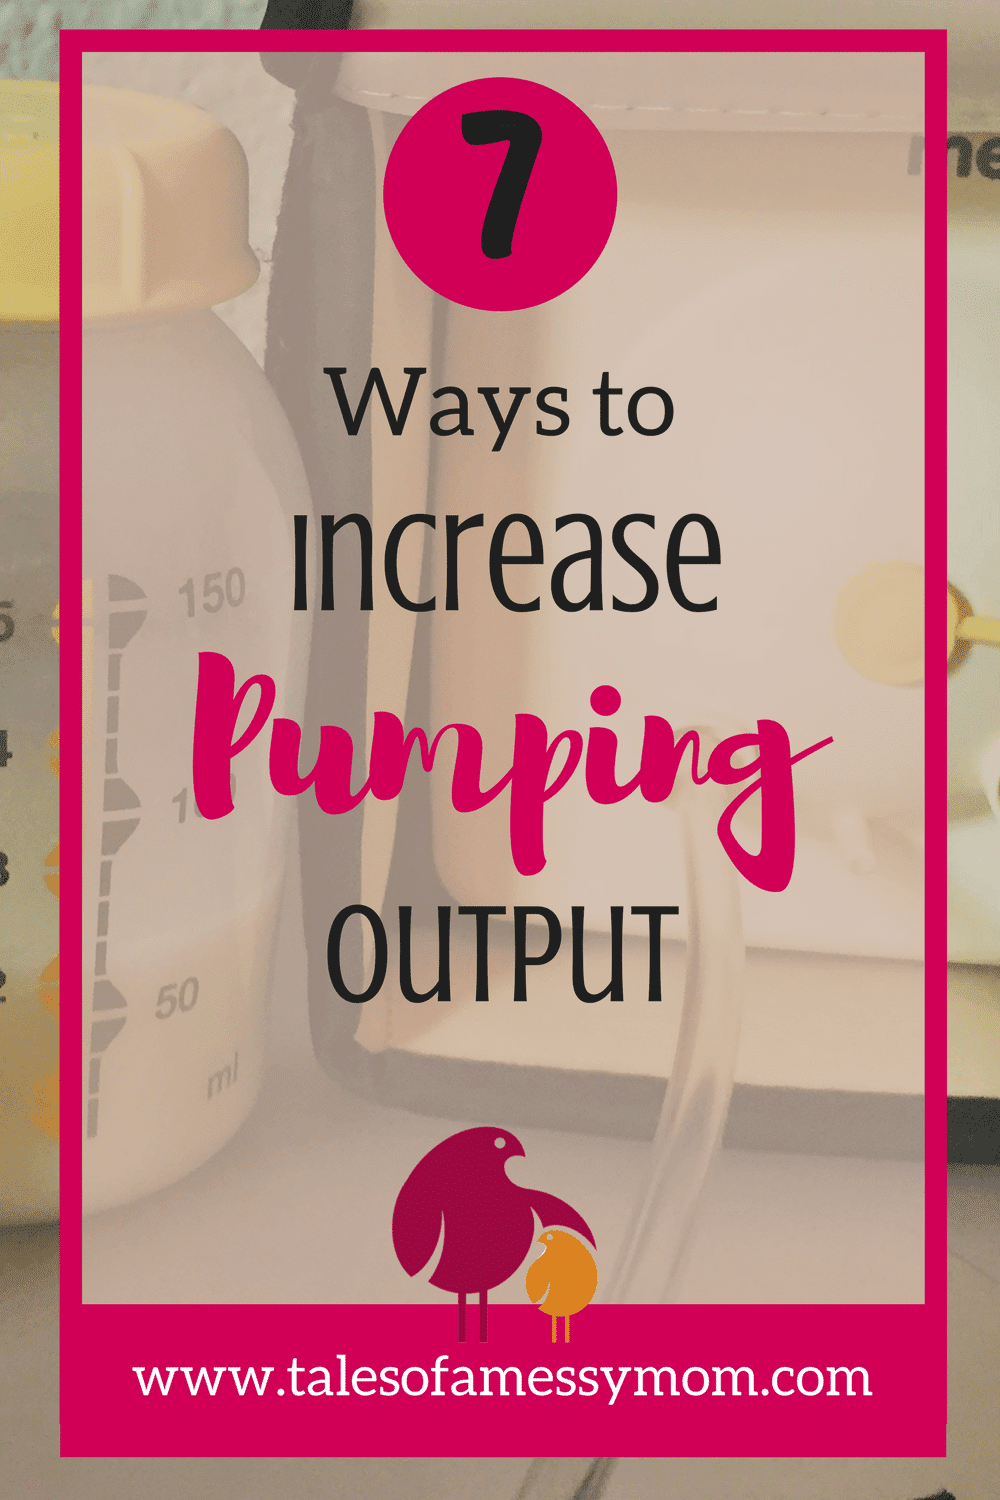 Returning to work after maternity leave is already stressful enough, but if you breastfeed you have the additional stress of making sure you pump enough milk for your little while your'e away. Here are 7 ways to reduce your stress and increase your pumping output! http://www.talesofamessymom.com